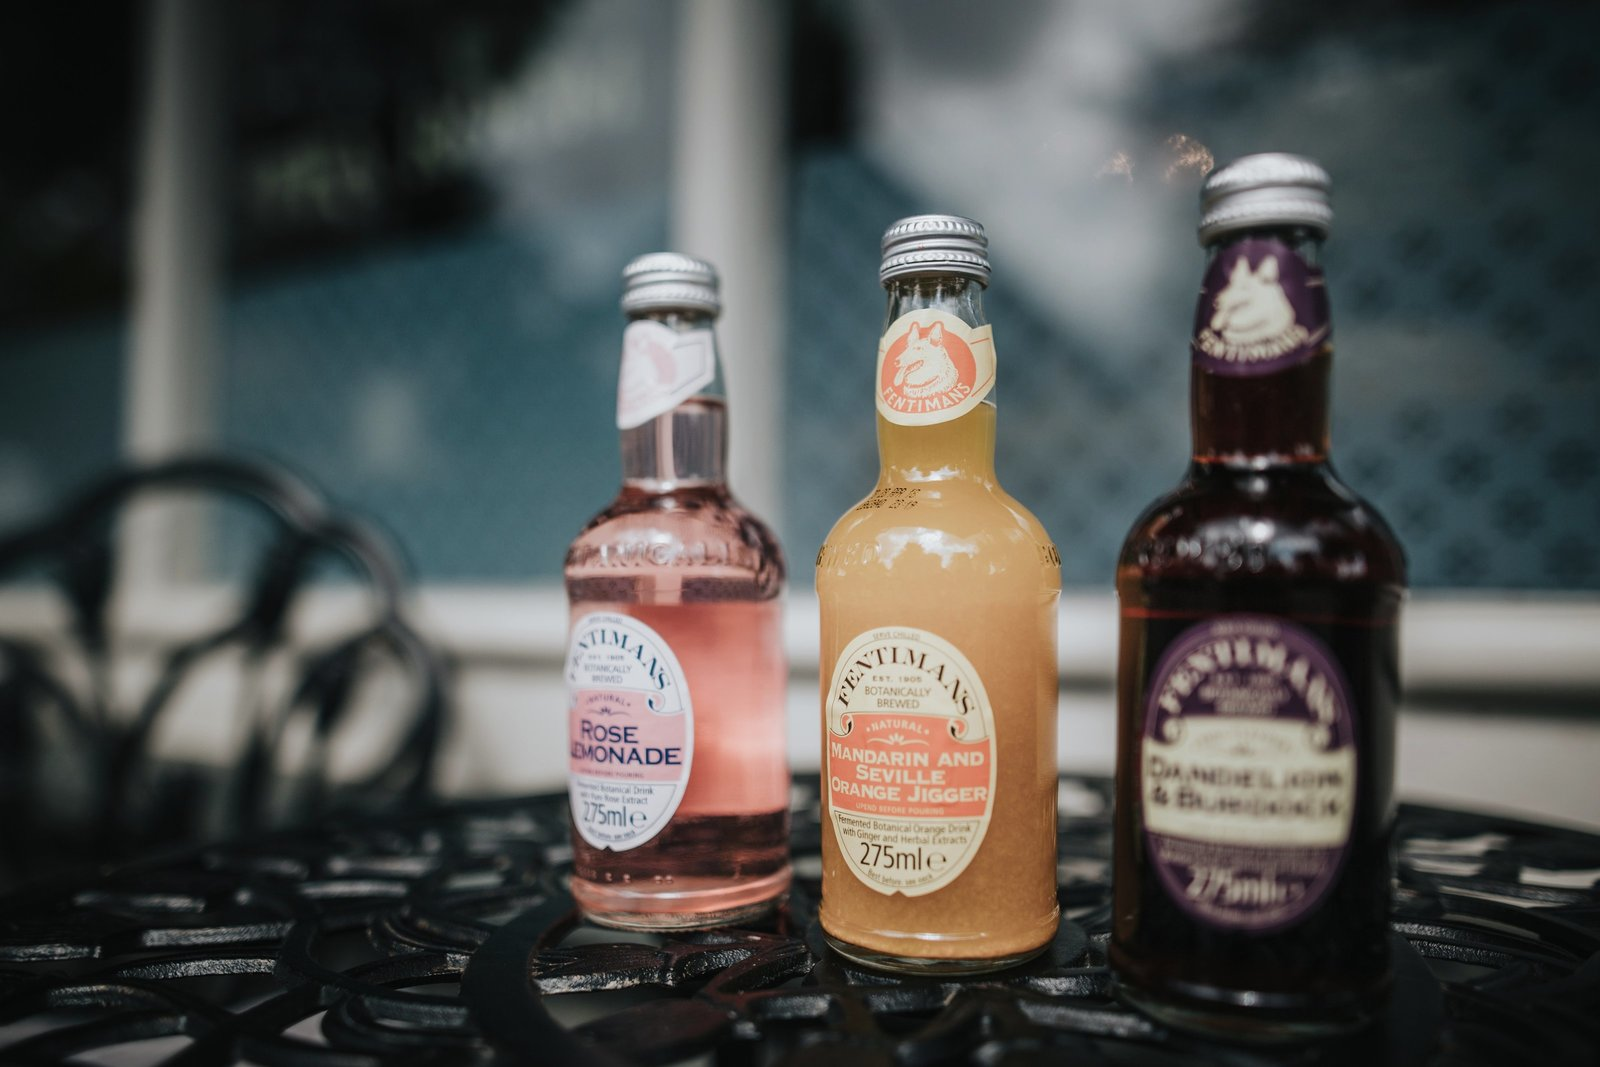 Selection of Fentimans traditional soft drinks that are available at Baldry's Grasmere